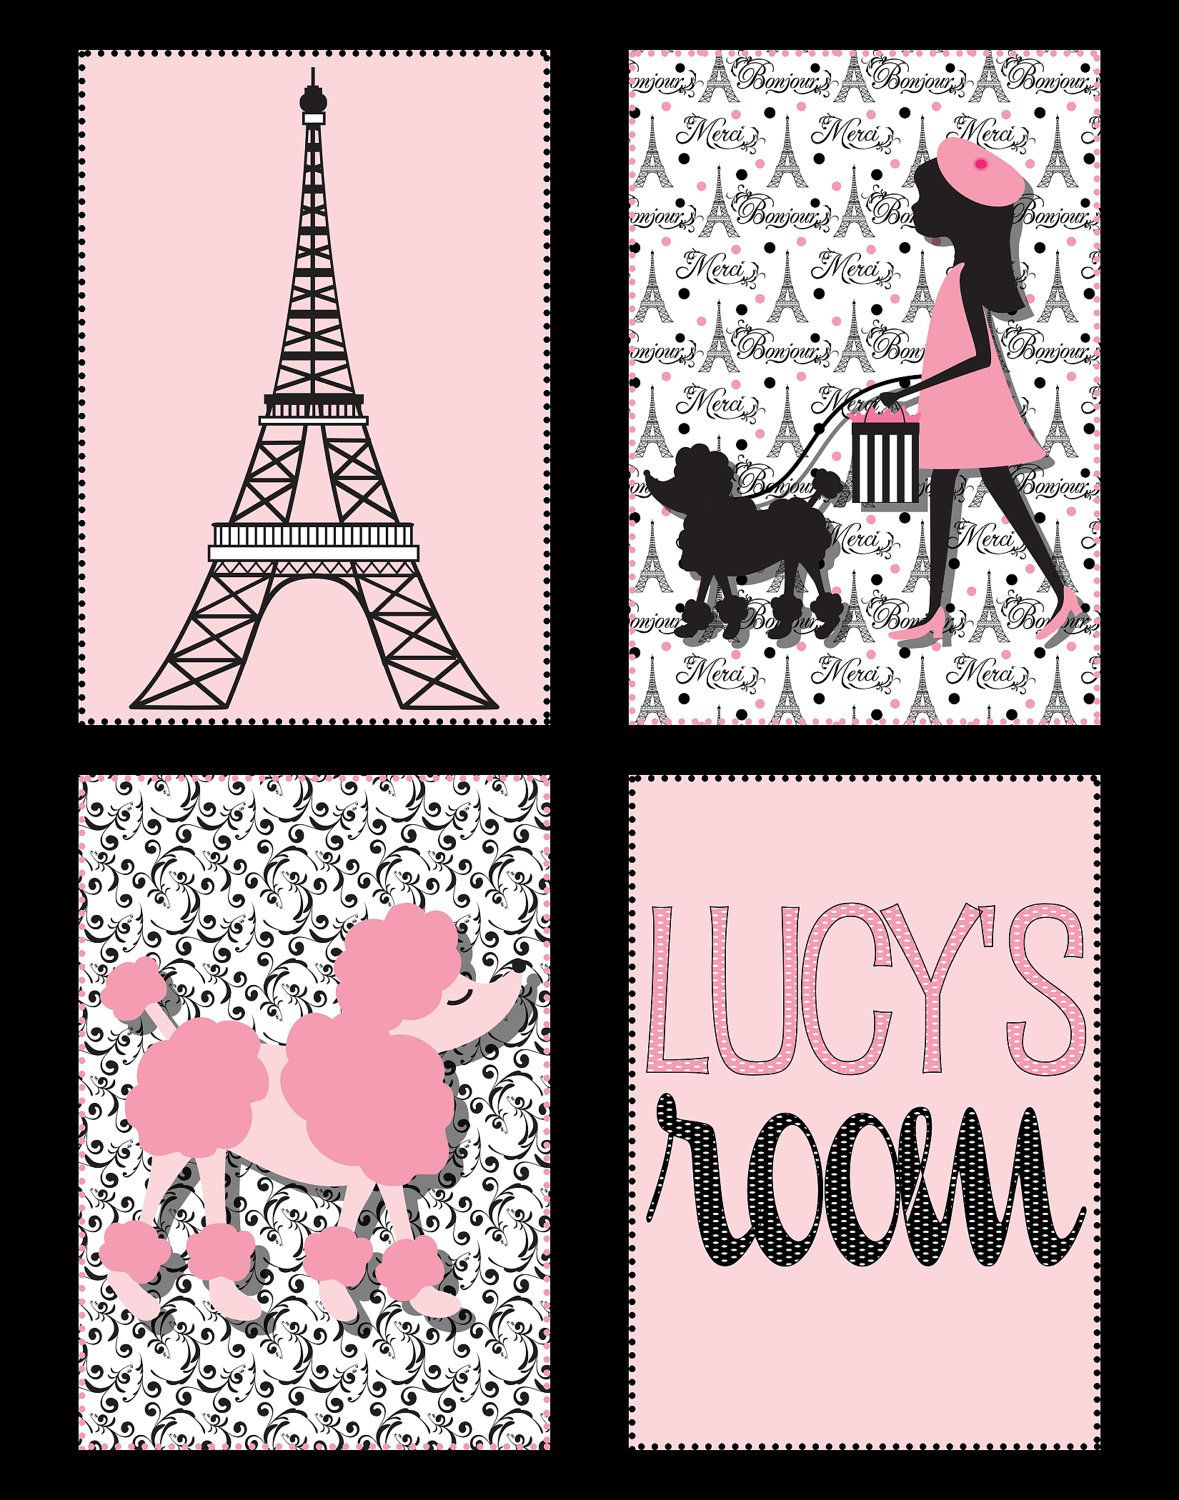 Eiffel tower poodle paris print in black and pink 11x14 eiffel tower poodle paris print in black and pink 11x14 printable 1200 pronofoot35fo Images